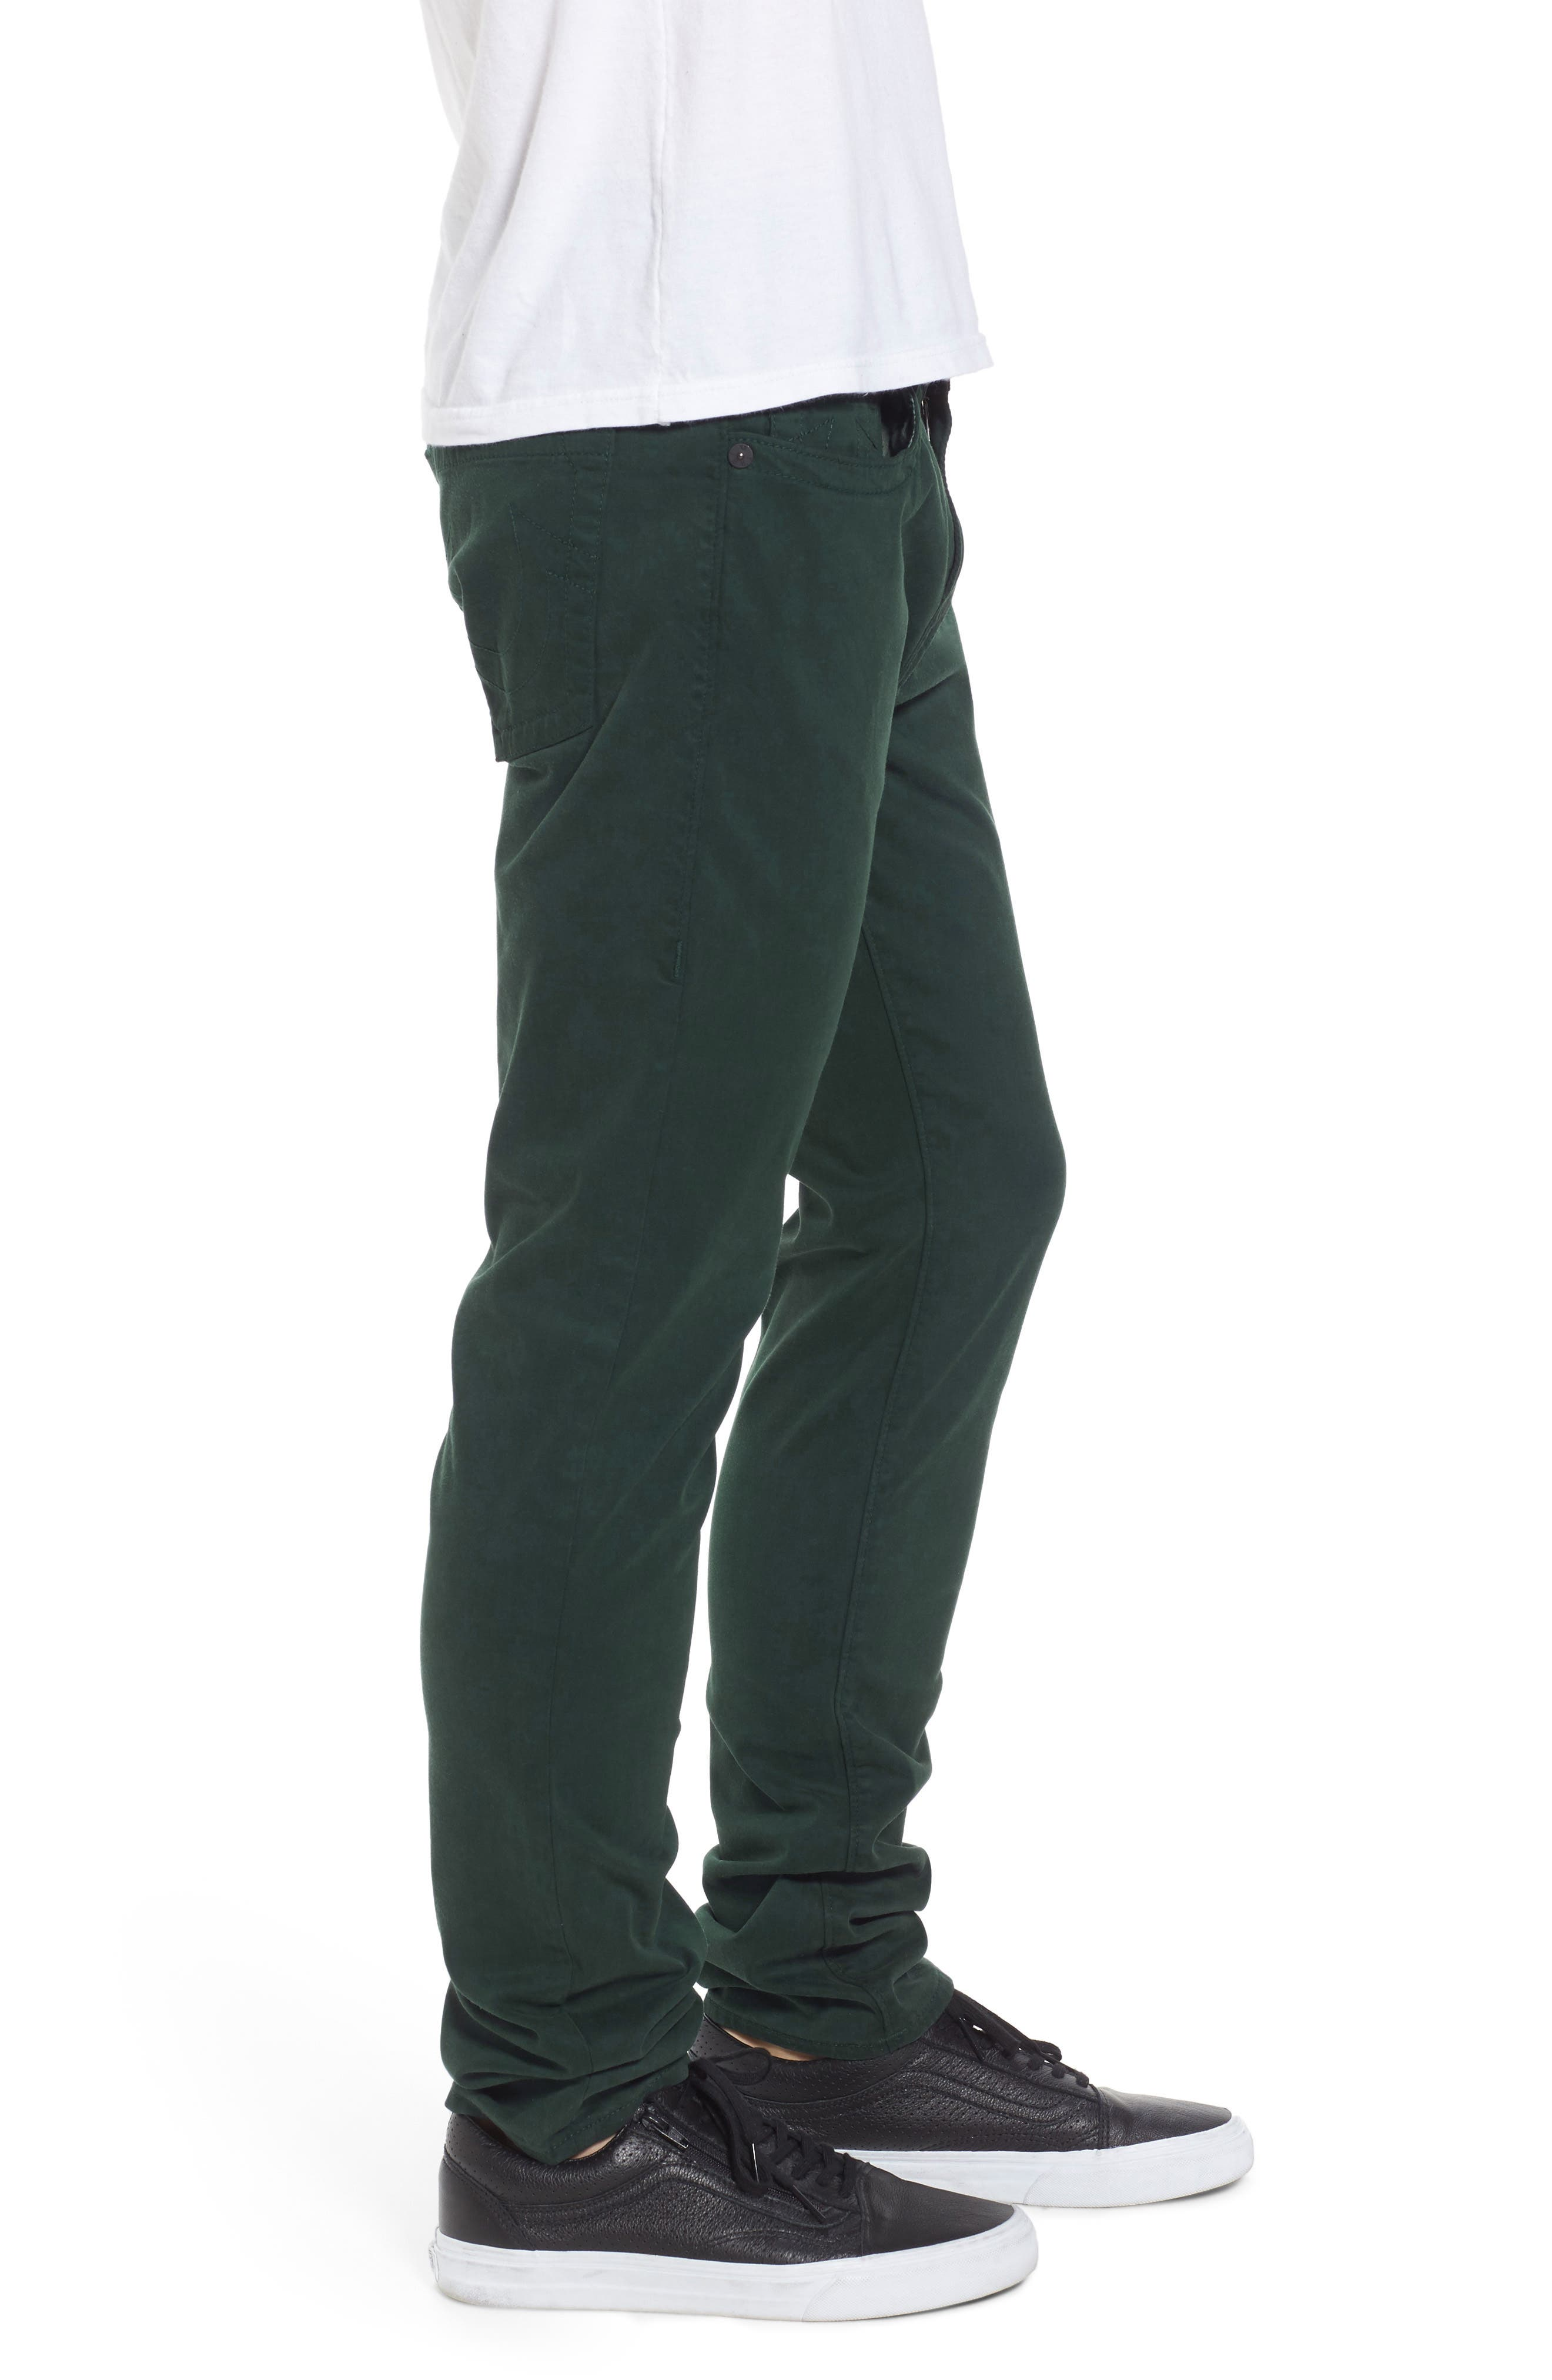 Rocco Skinny Fit Jeans,                             Alternate thumbnail 3, color,                             300